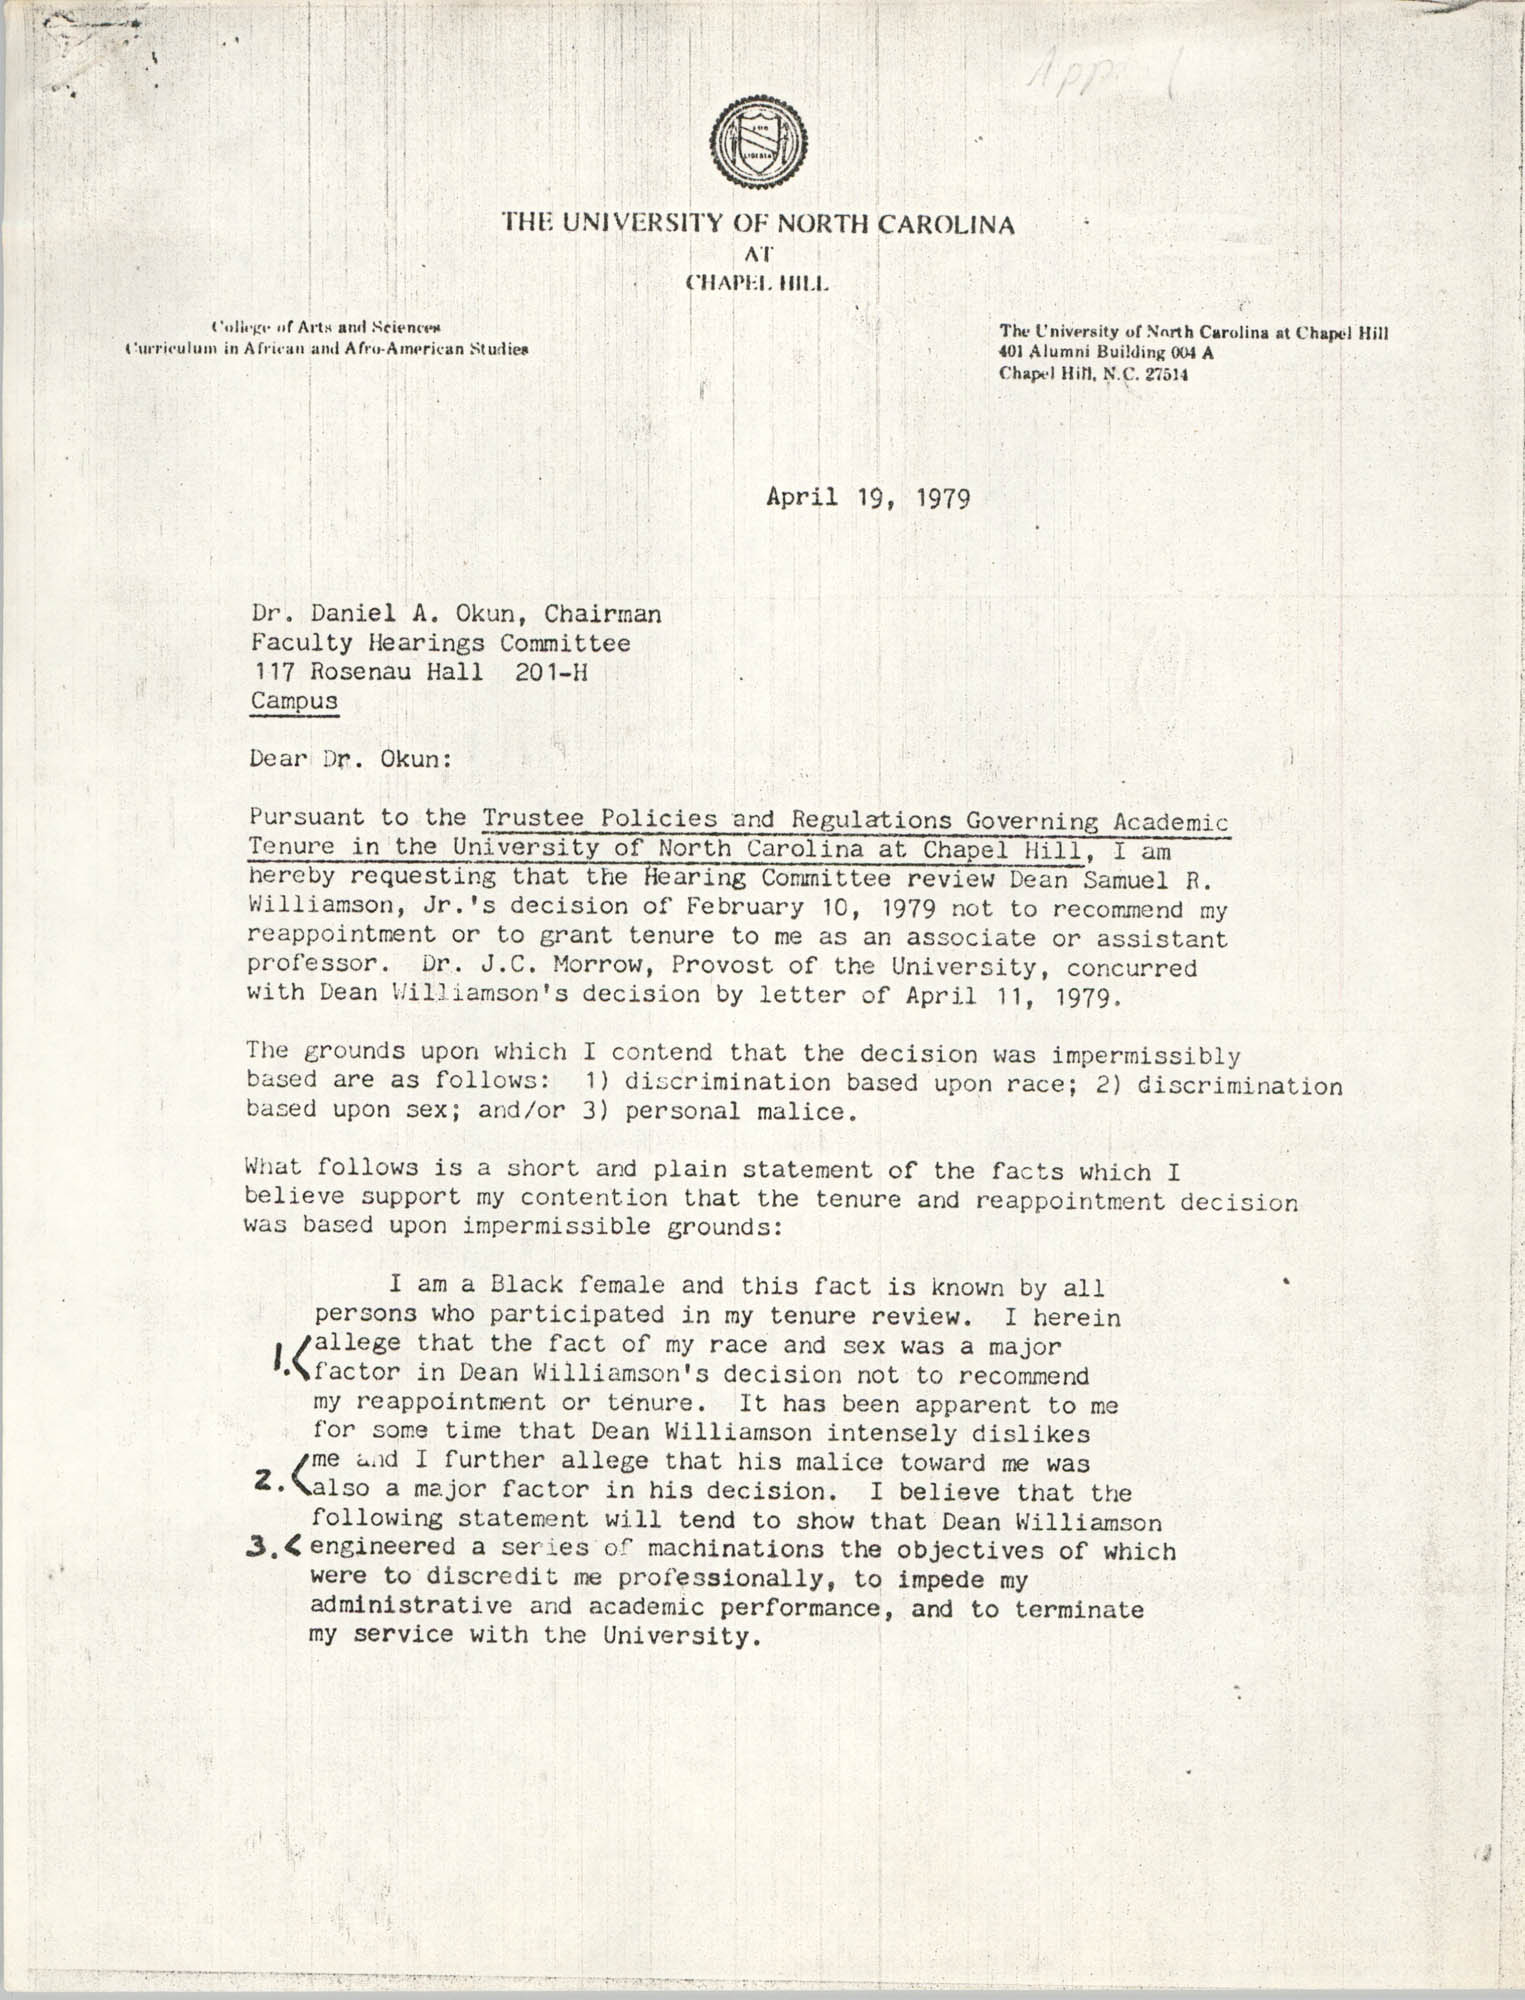 Letter from Sonja H. Stone to Daniel A. Okun, April 19, 1979